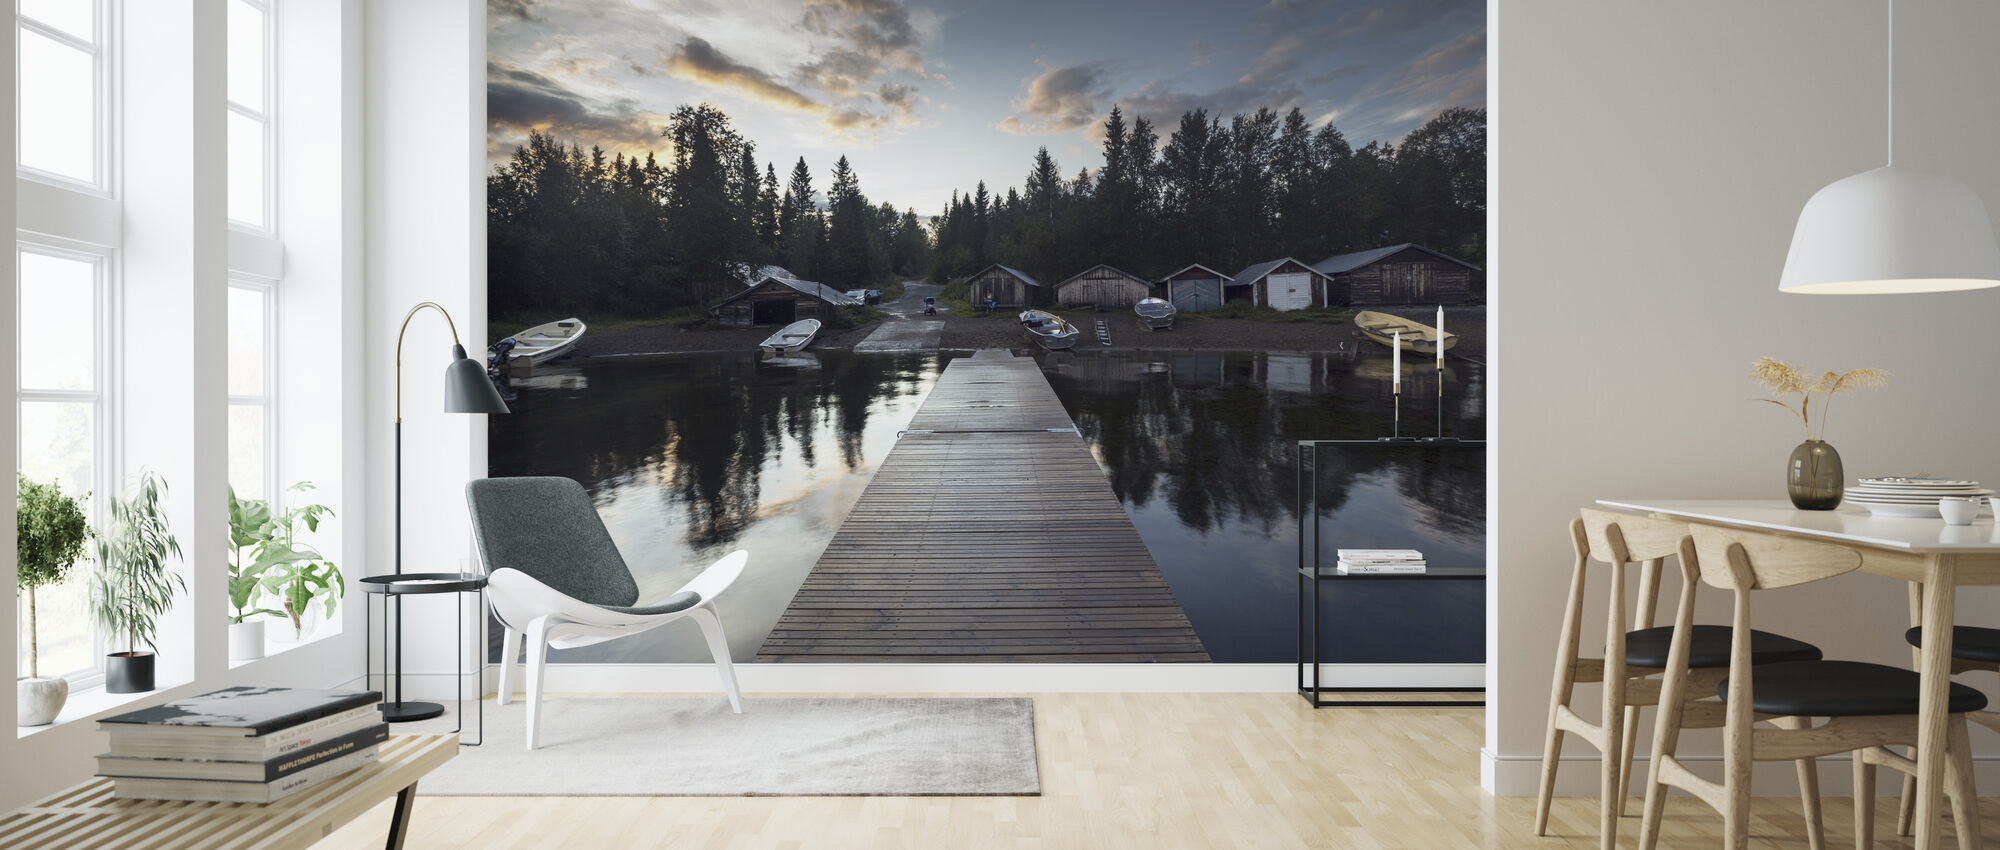 Cabin and Boats - Wallpaper - Living Room